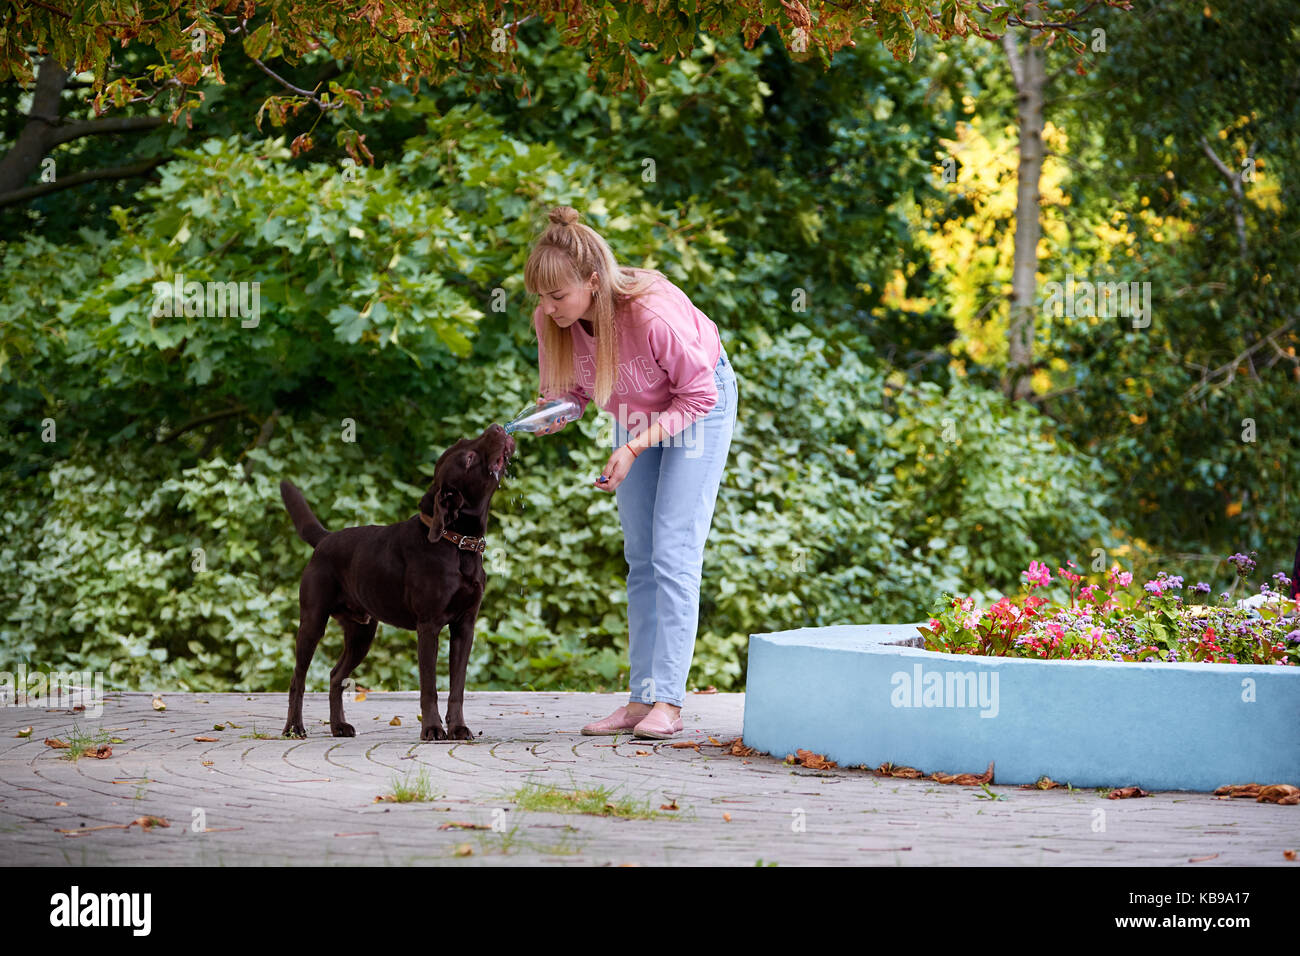 the dog drinks water on a hot day with the bottles - Stock Image